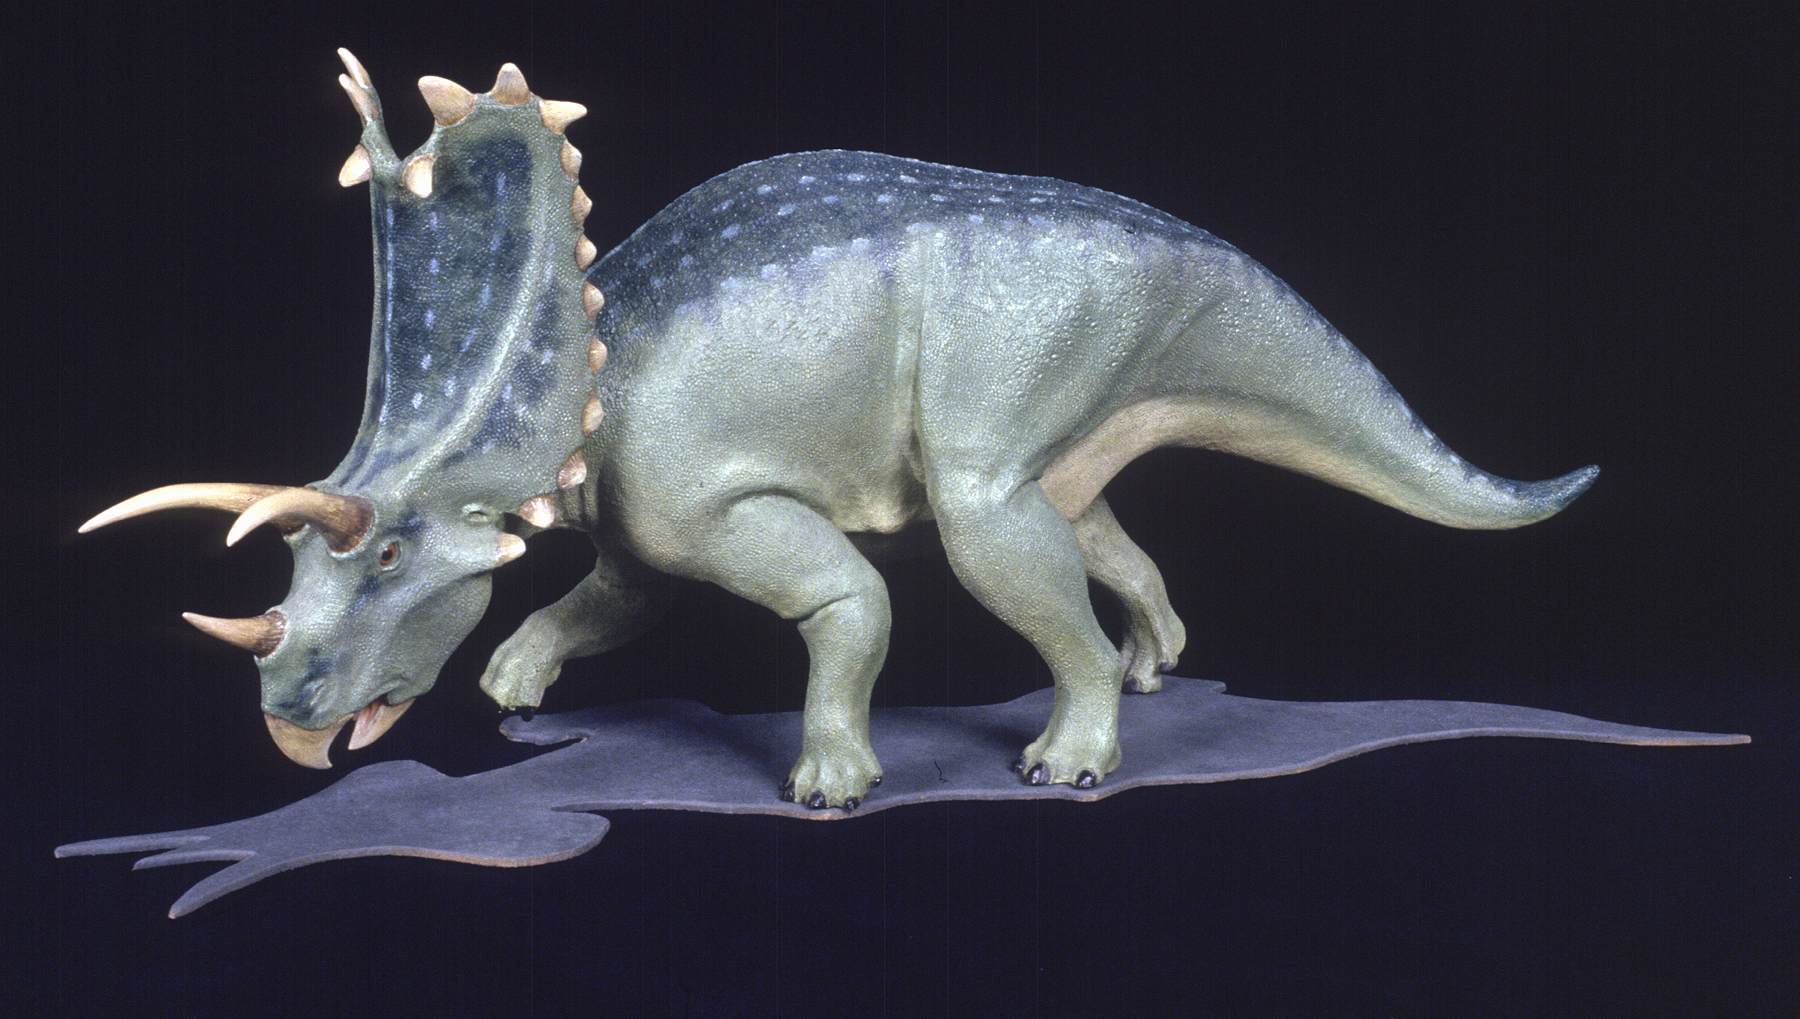 Pentaceratops reconstruction